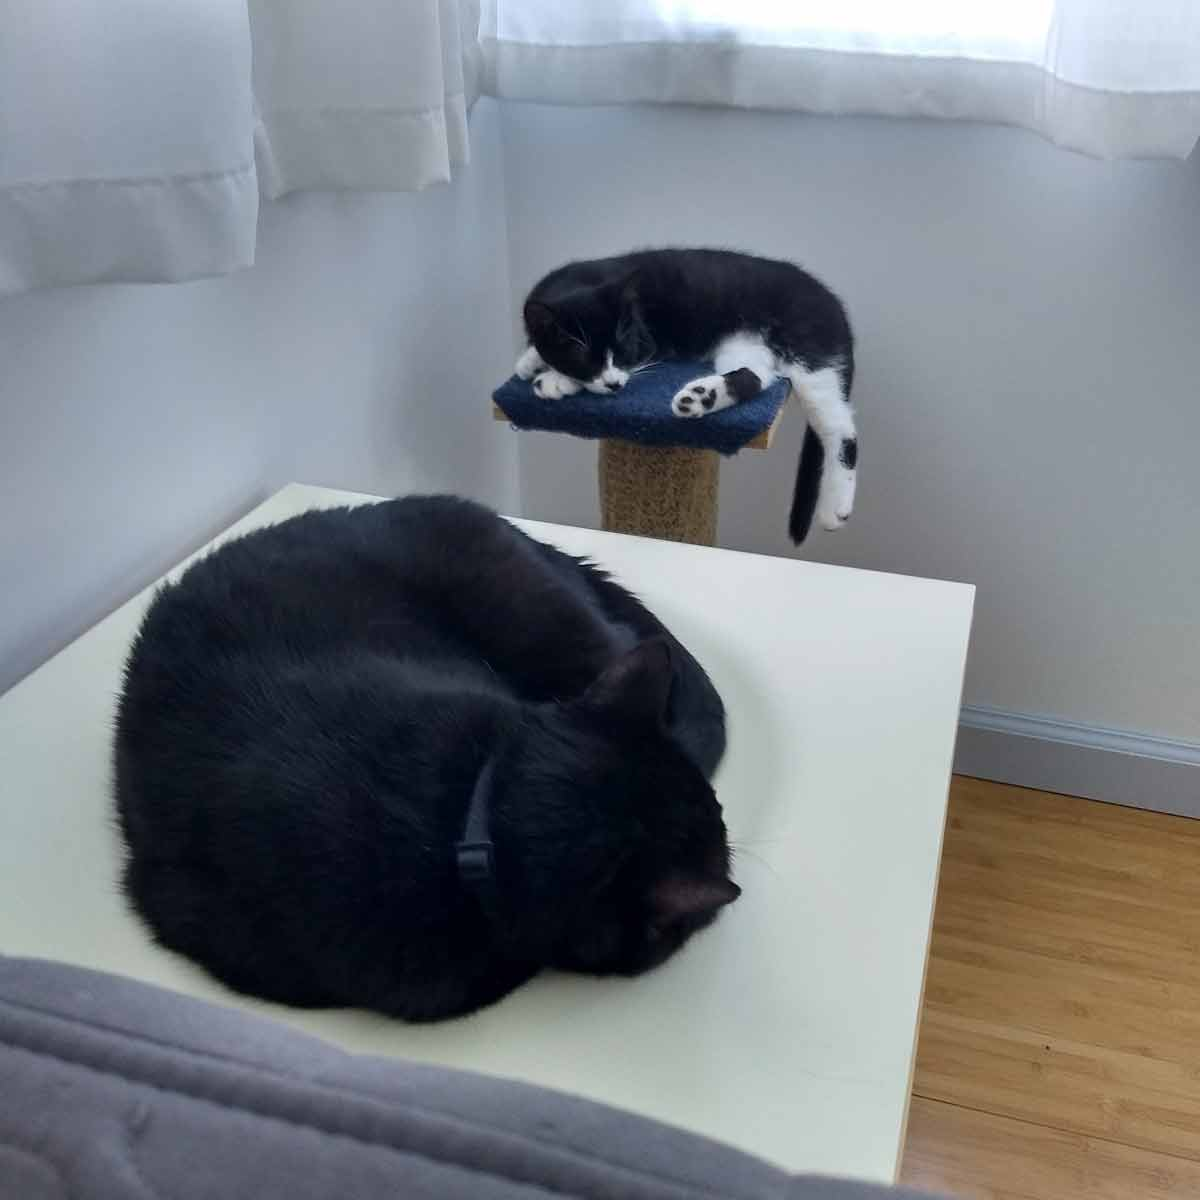 Shadow curled up on bowl table and foster kitten Dot napping on cat tree